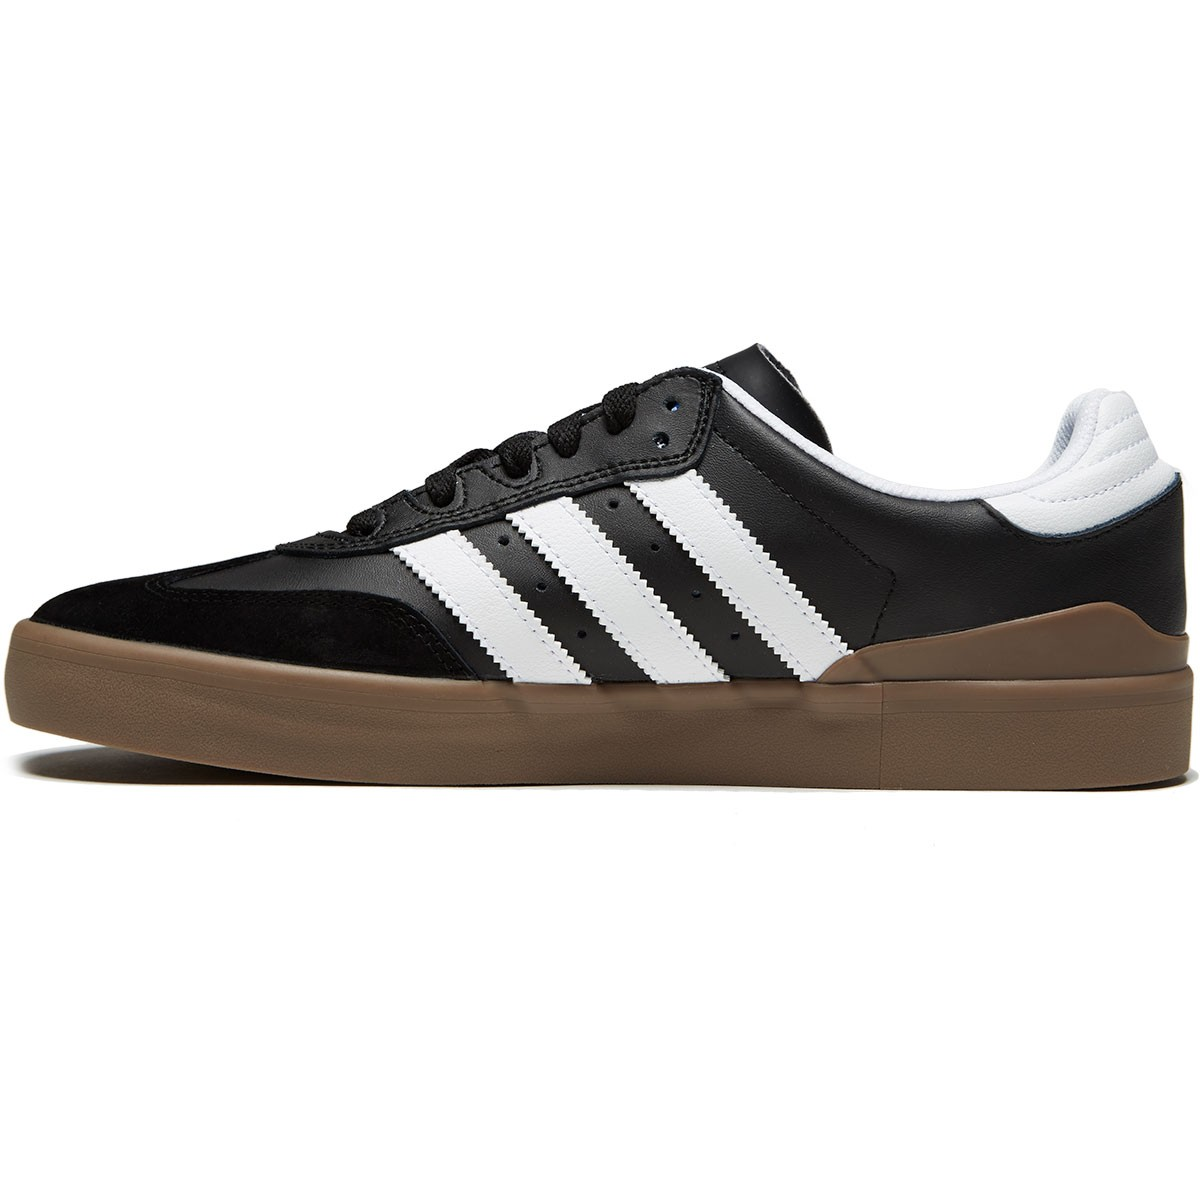 c07c4322dd7 Adidas Busenitz Vulc Rx Shoes - Core Black White Gum